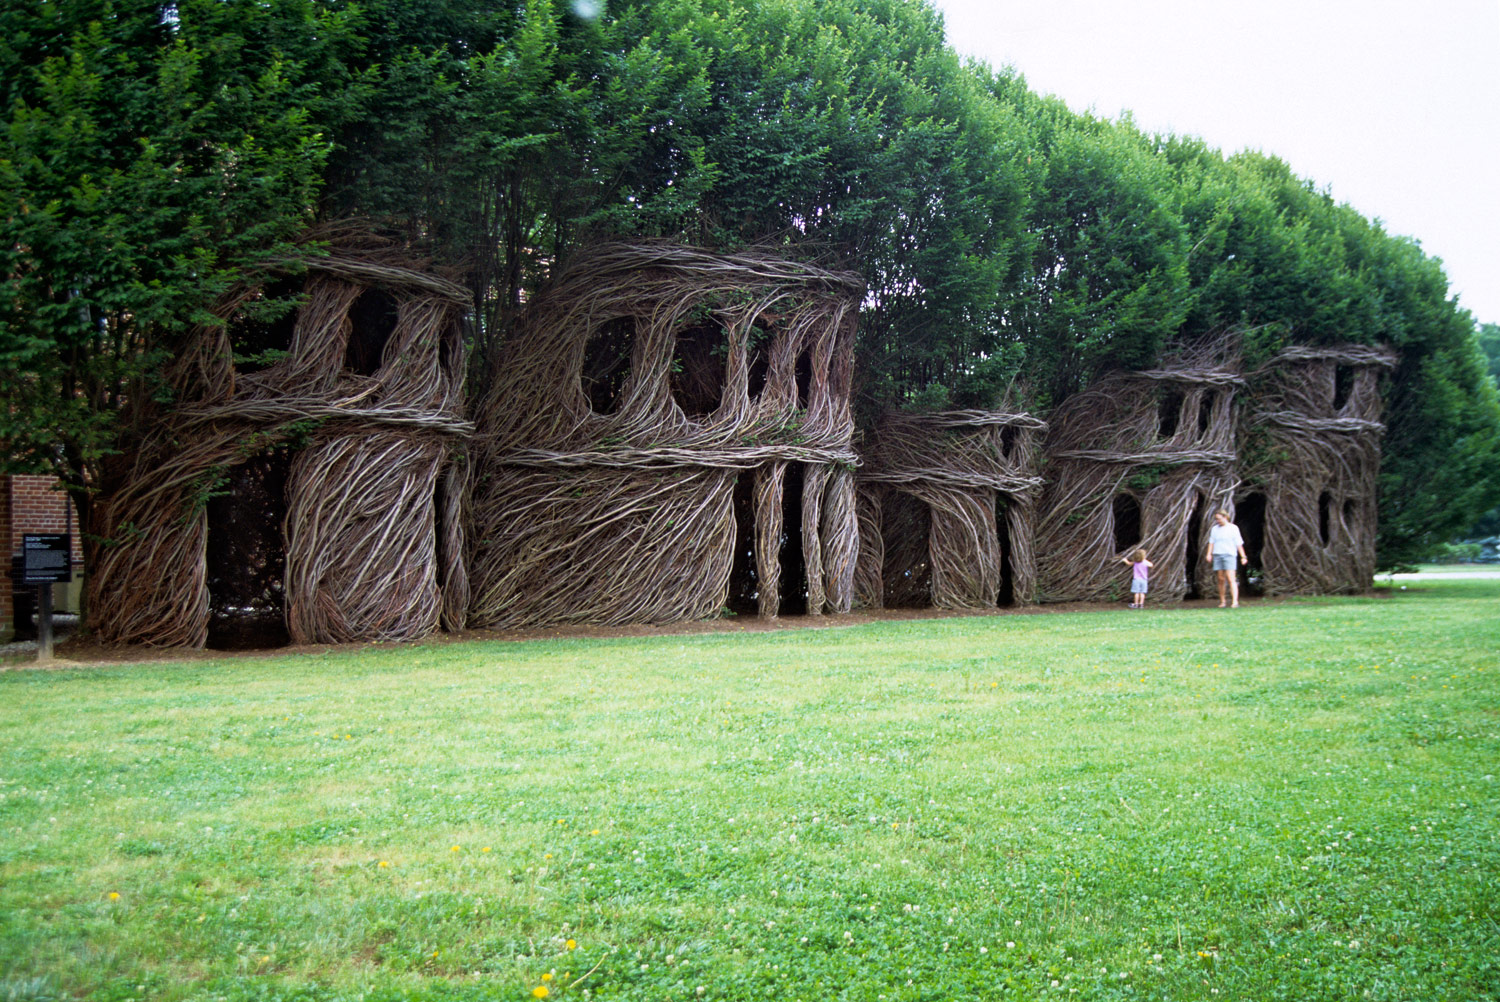 Art Installation by Patrick Dougherty